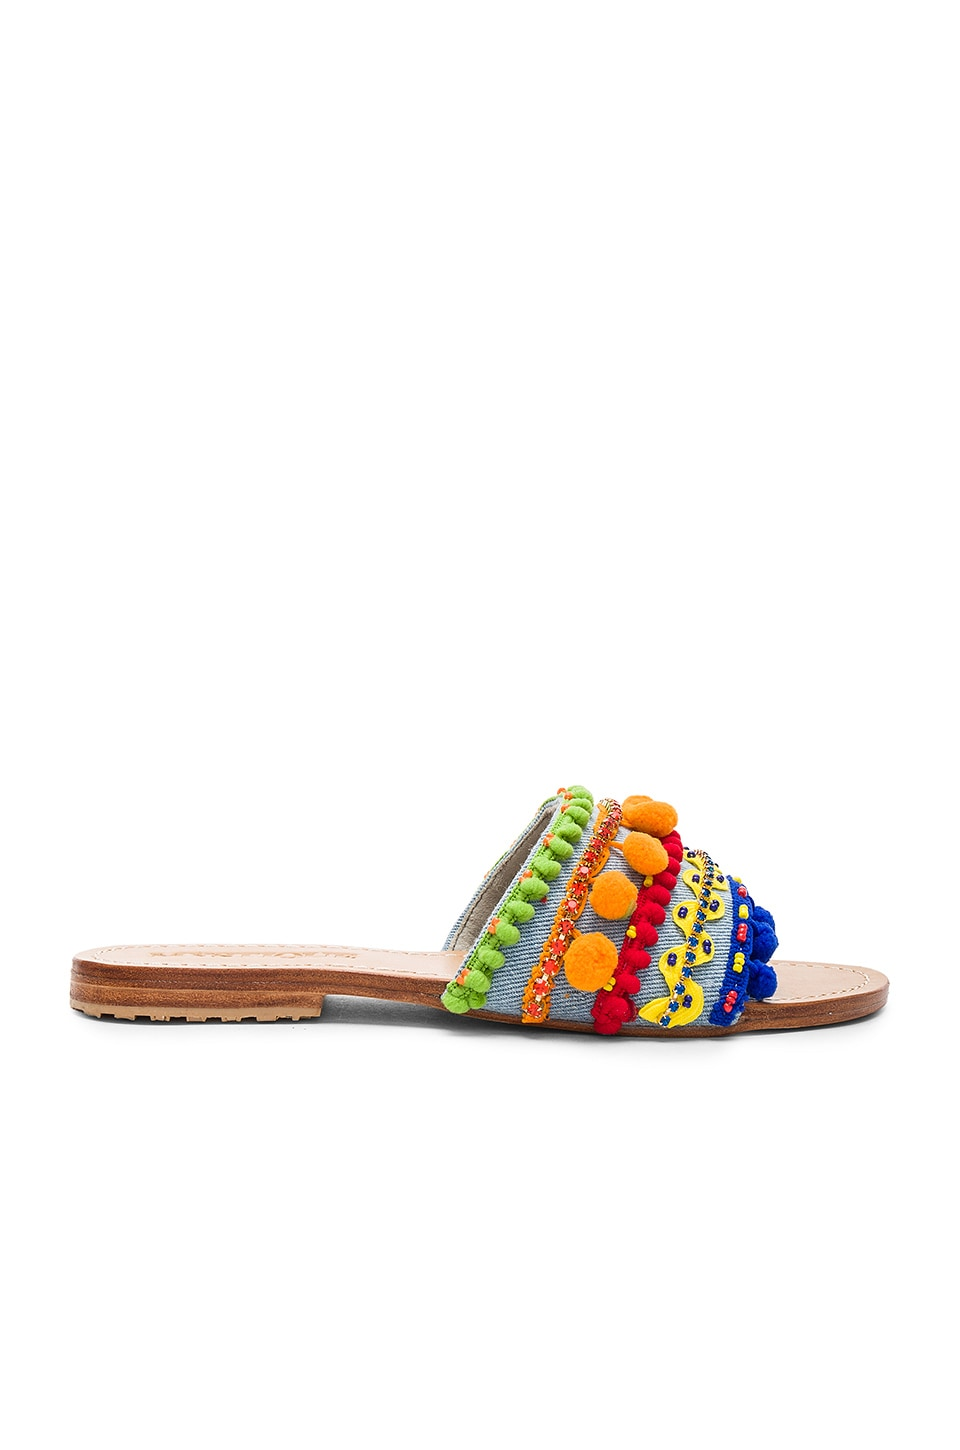 Mystique Sandal in Multi